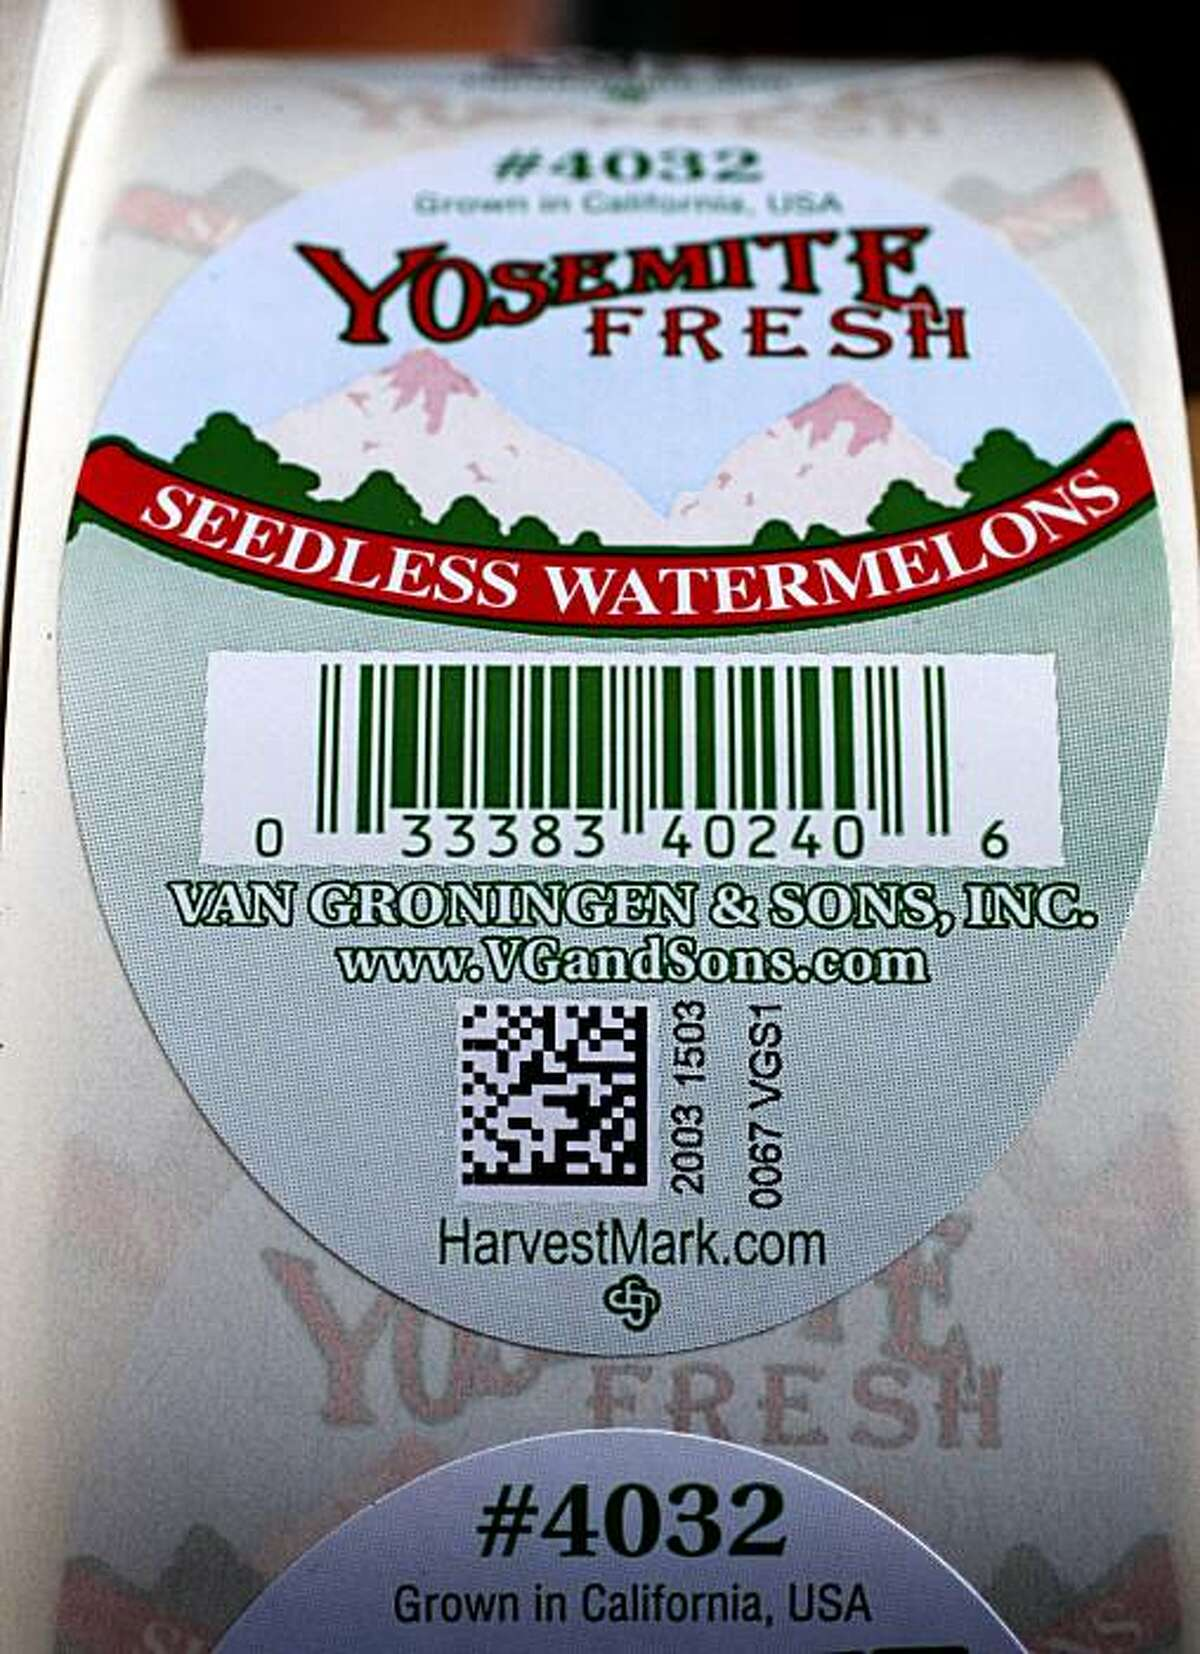 A roll of HarvestMark tracking labels will be attached on watermelons at the Van Groningen & Sons produce company in Manteca, Calif., on Tuesday, July 28, 2009. The new bar code system helps consumers keep track of where and when produce was grown and processed in case of an E. coli outbreak.